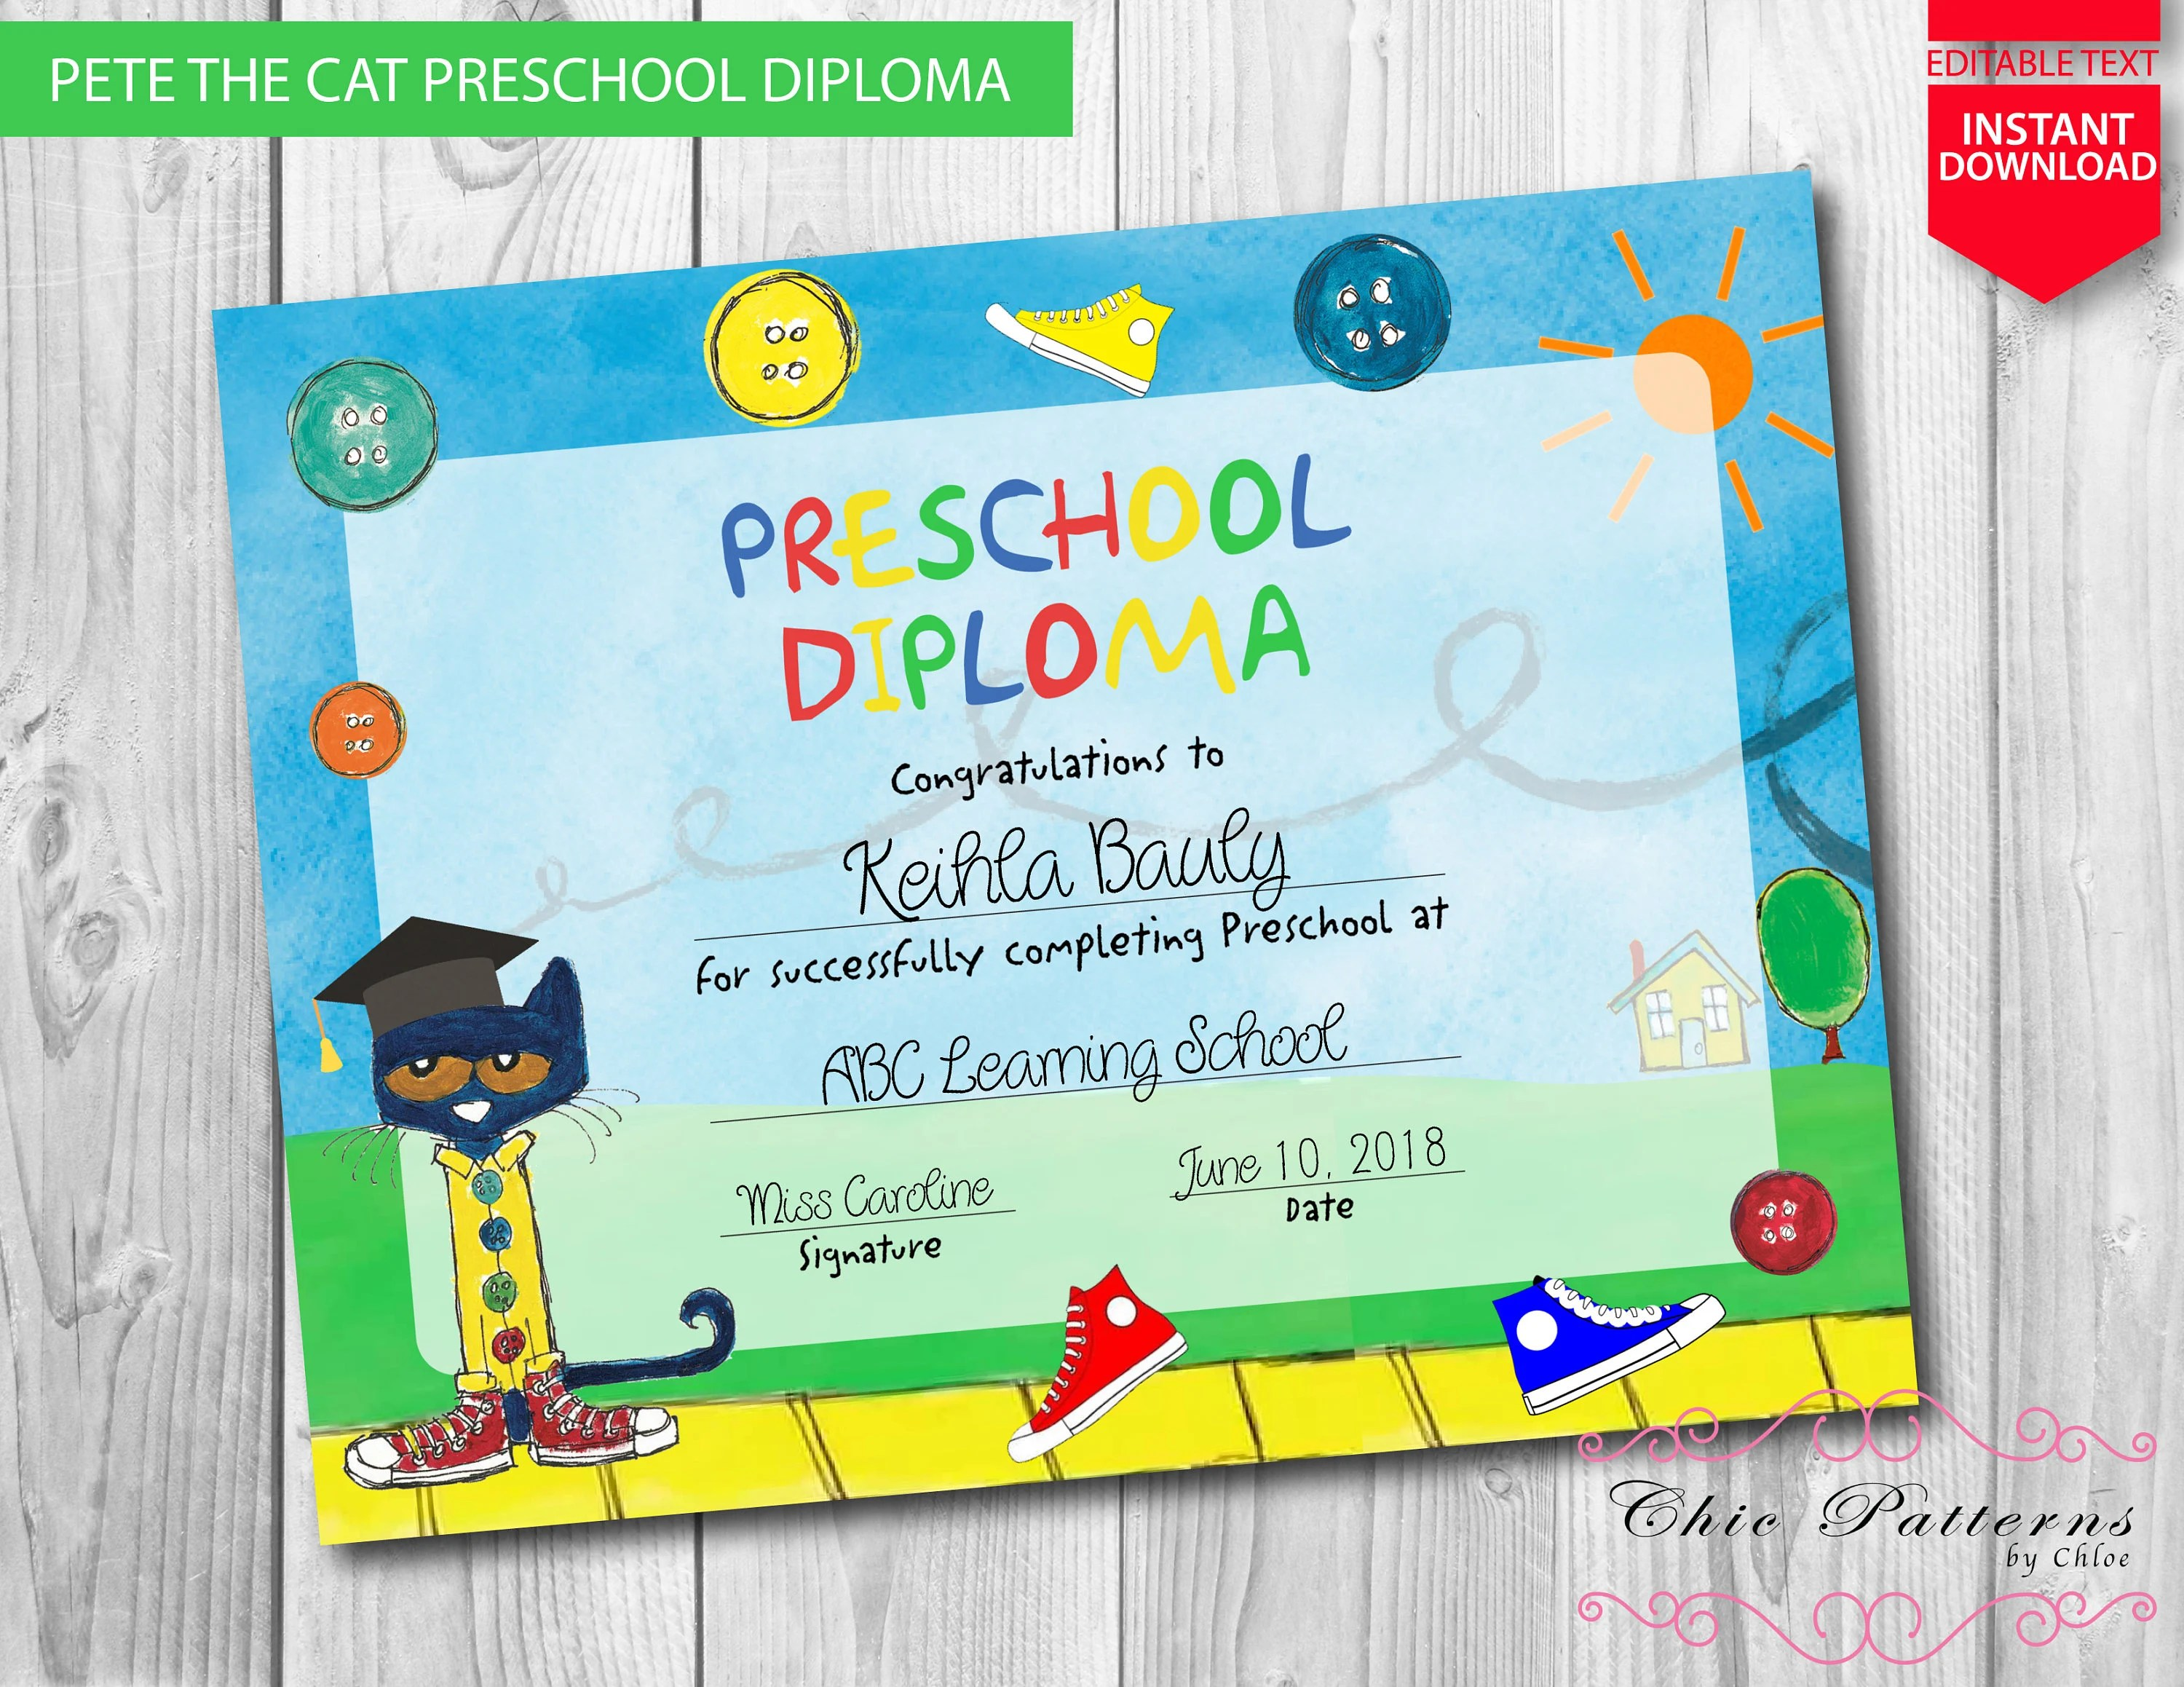 Pete the Cat Preschool Diploma INSTANT DOWNLOAD Editable - Printable Preschool Diplomas